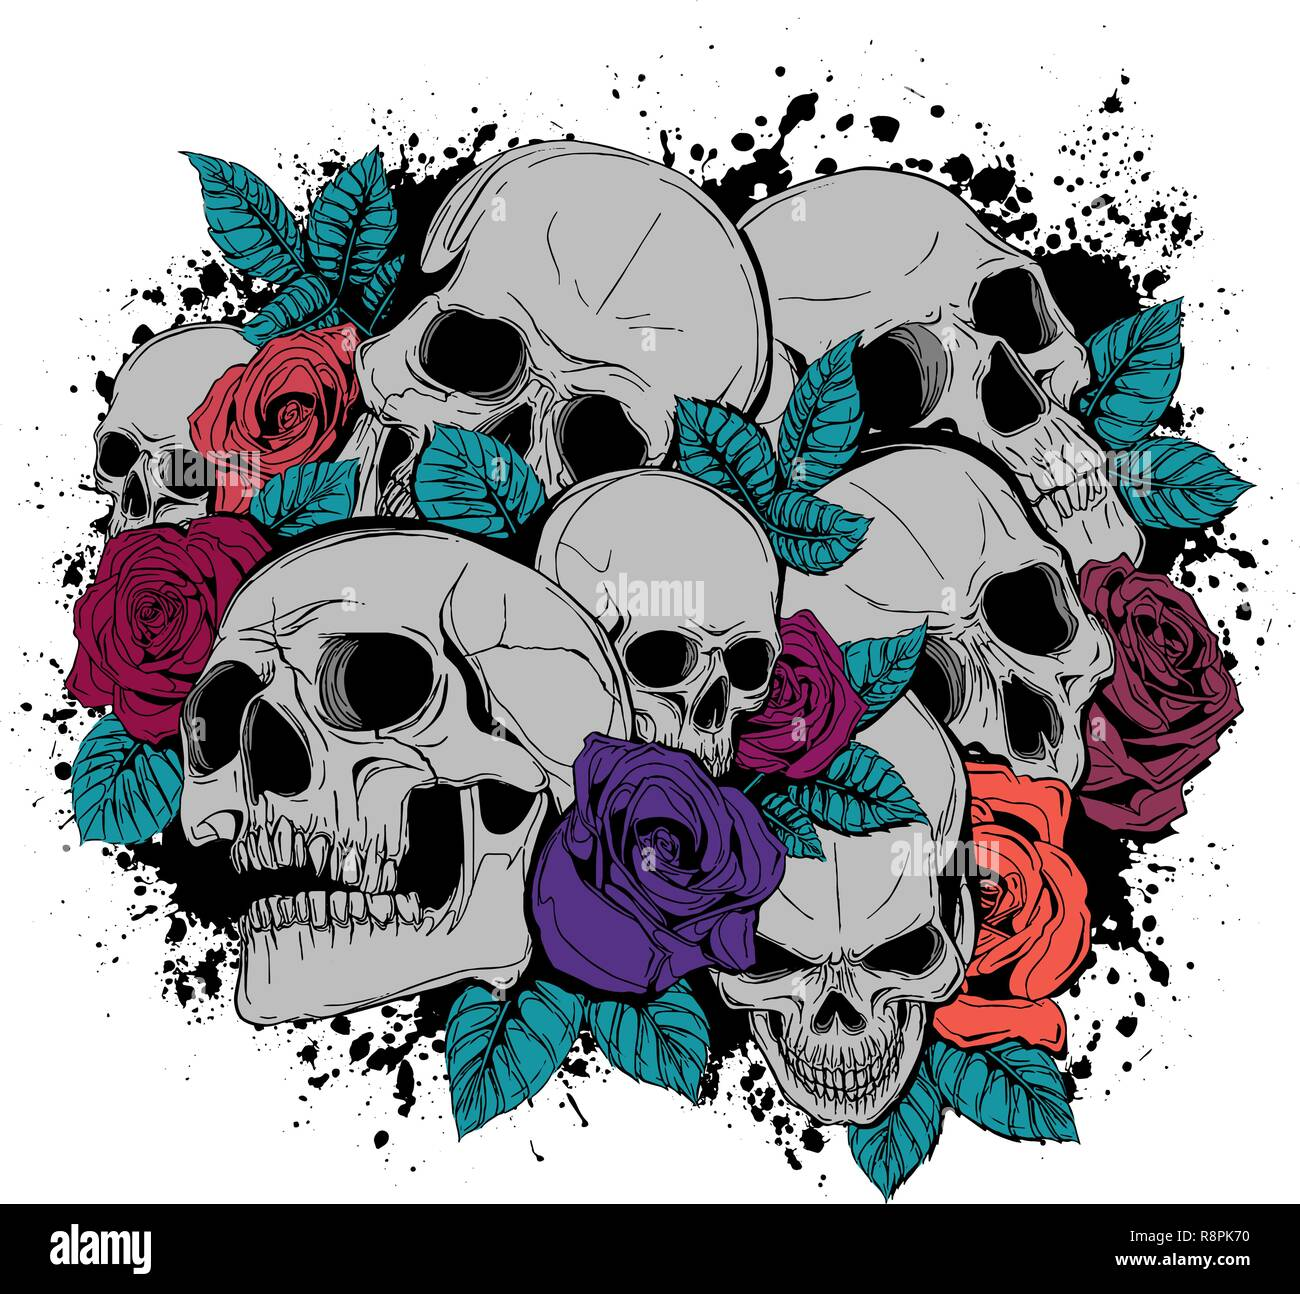 e1e4a8c39 Skull and flowers butterflies vector illustration Day of the Dead - Stock  Vector